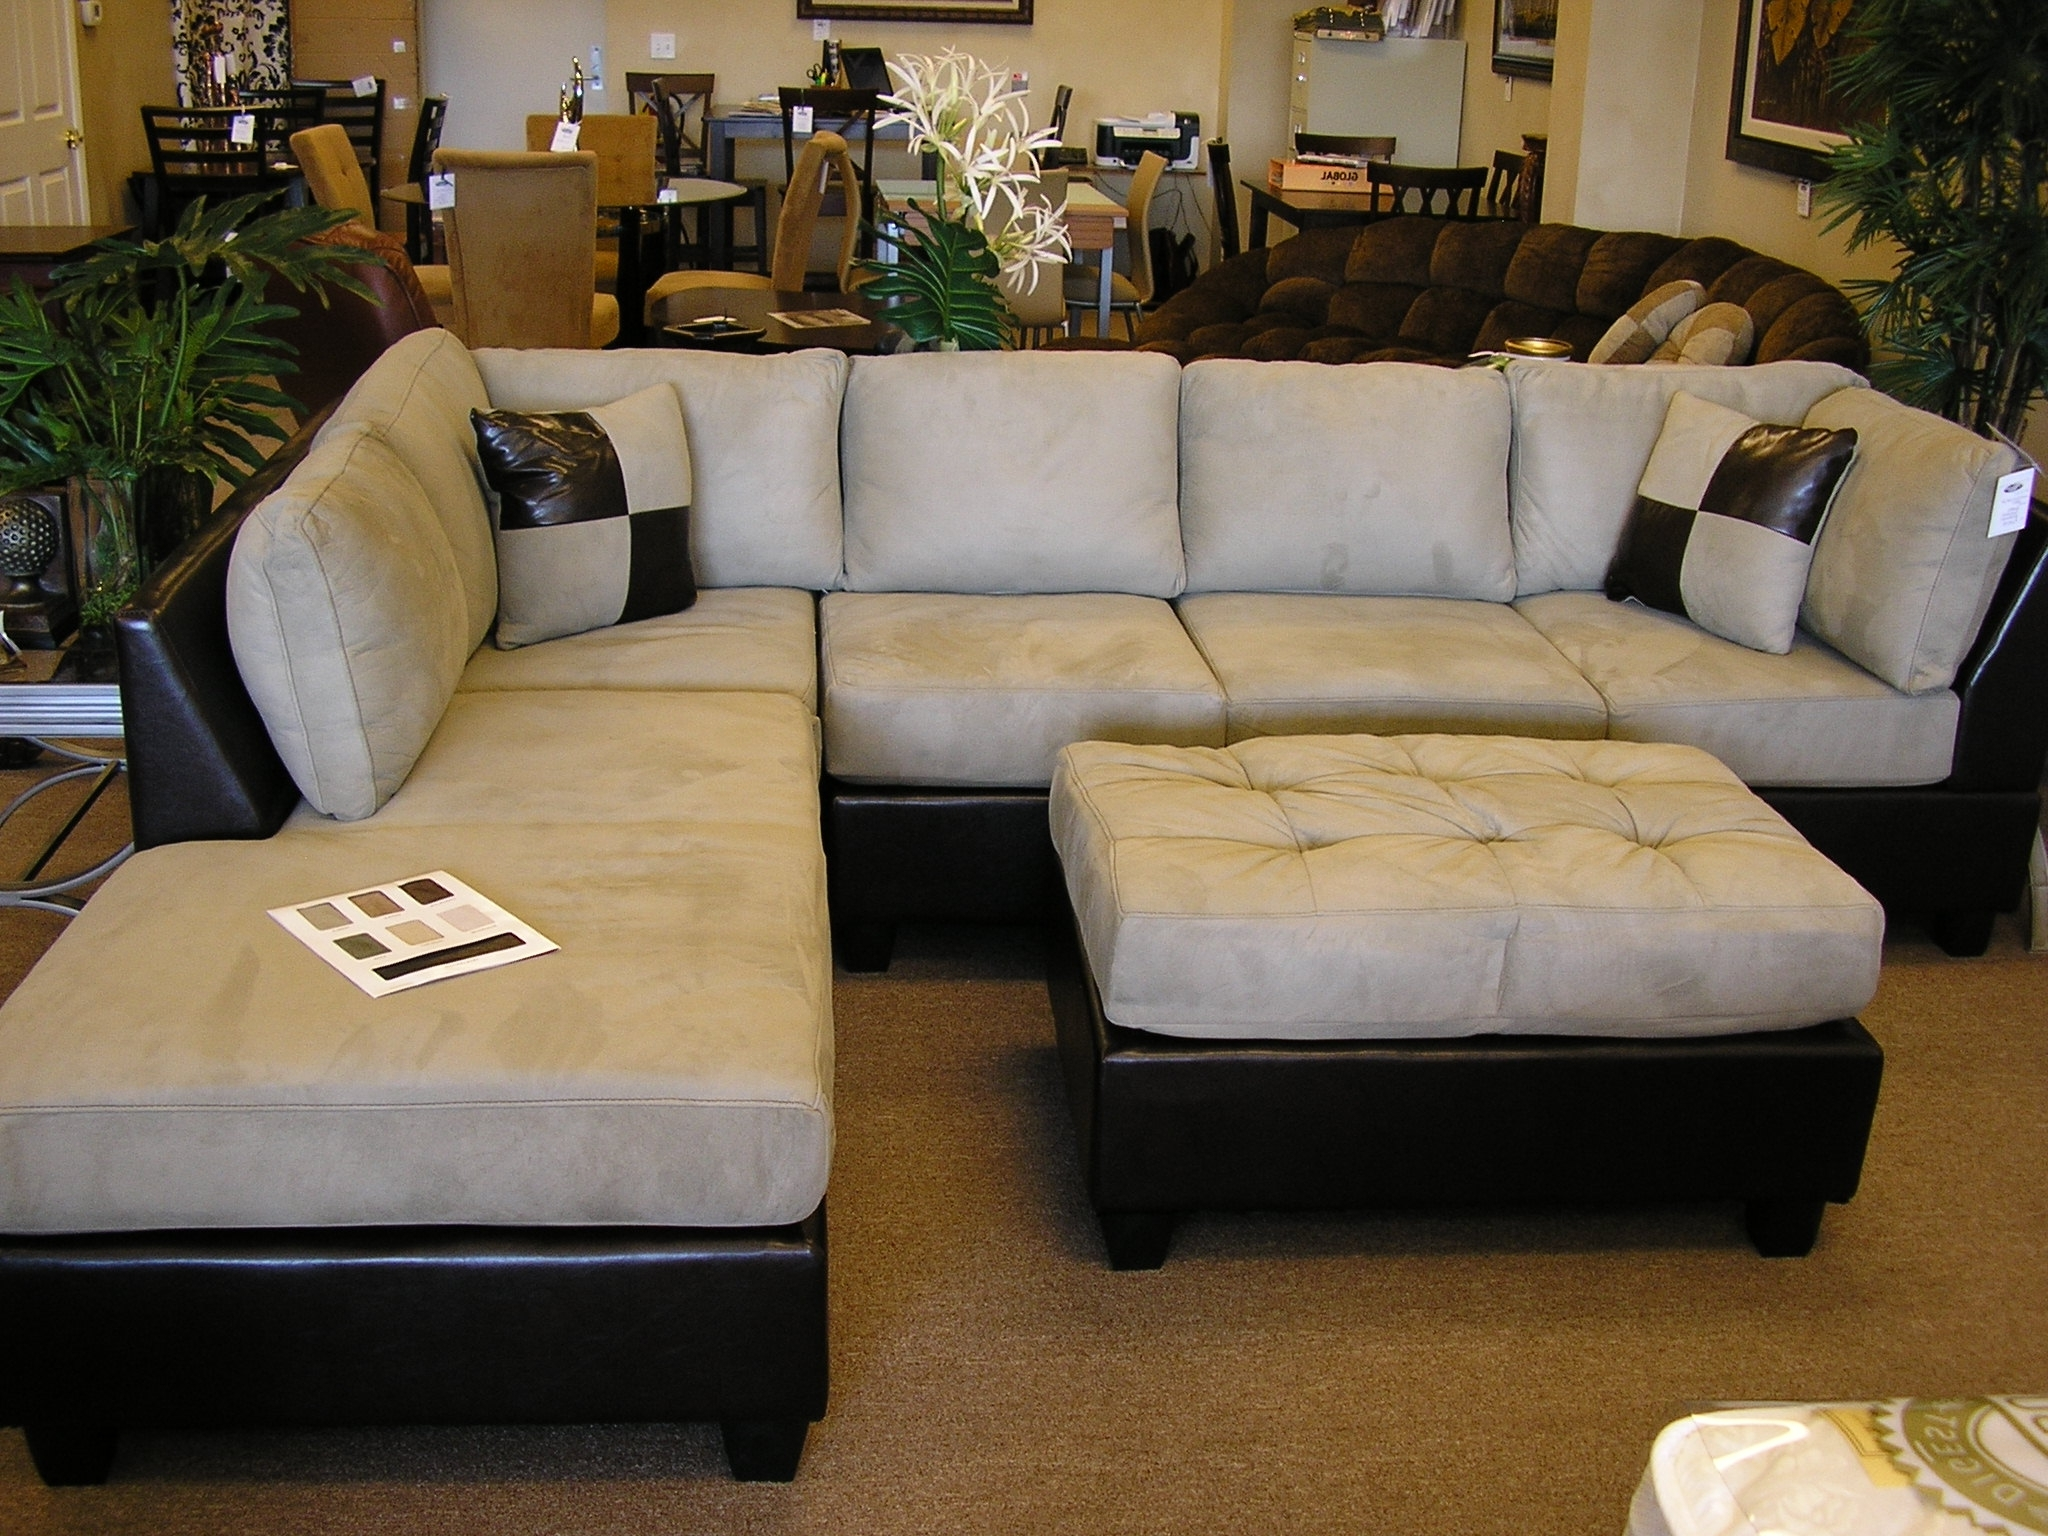 Recent Furniture : Sectional Chaise Lounge Sofa Double Along With Throughout Long Chaise Sofas (View 12 of 15)